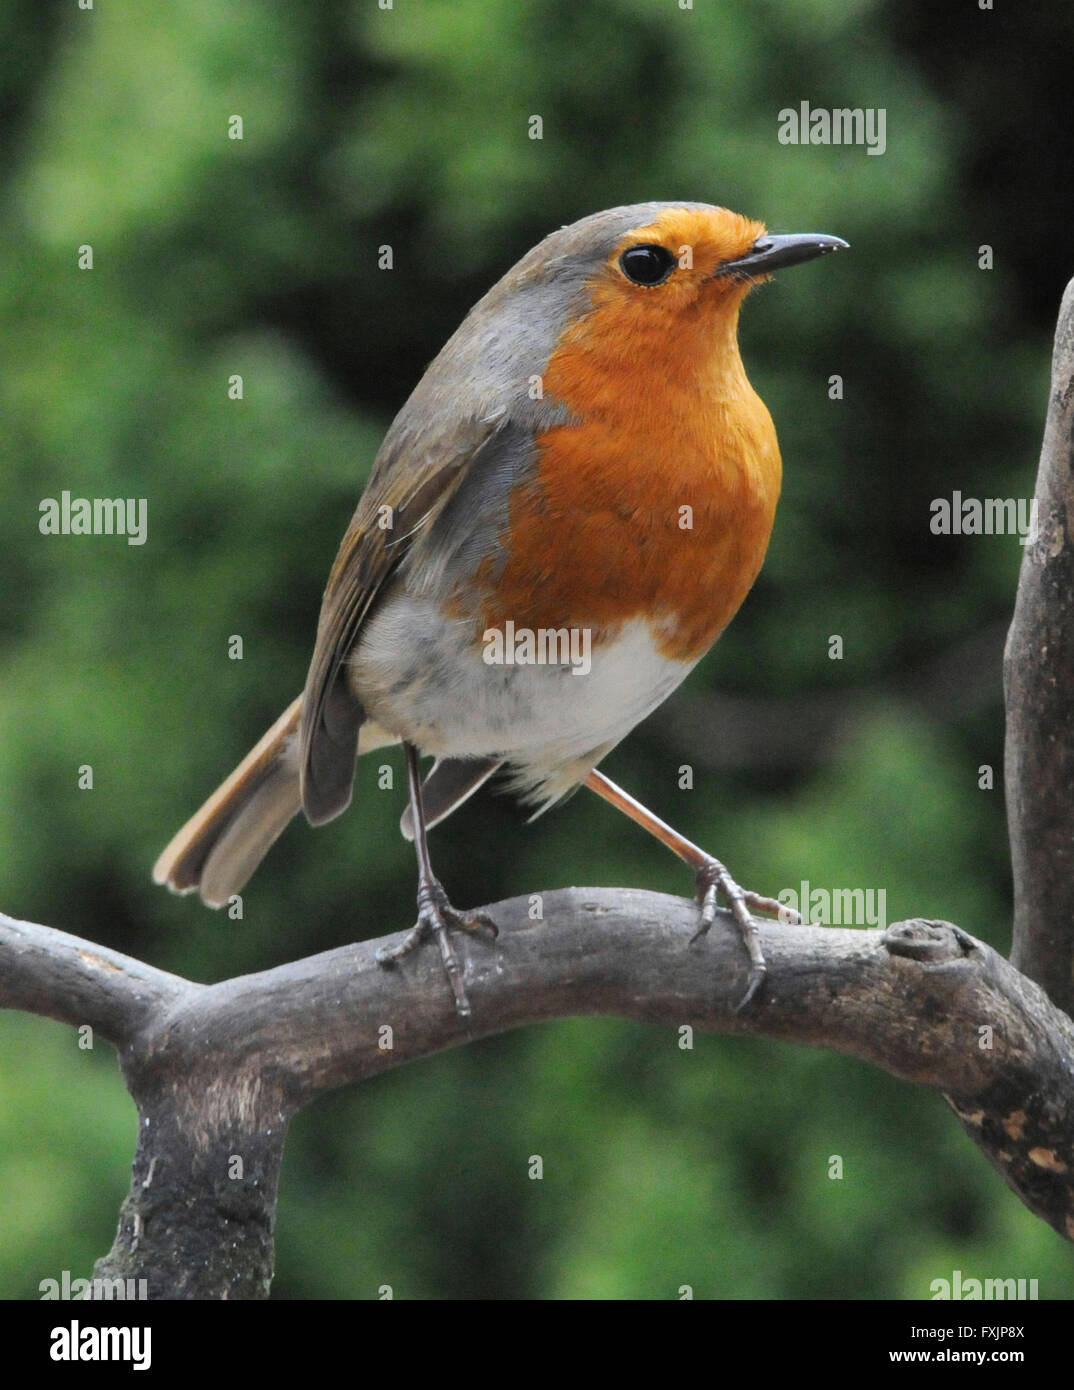 Robin (Erithacus rubecula)  The European Robin a common garden bird inclined to show aggression to other robins. - Stock Image